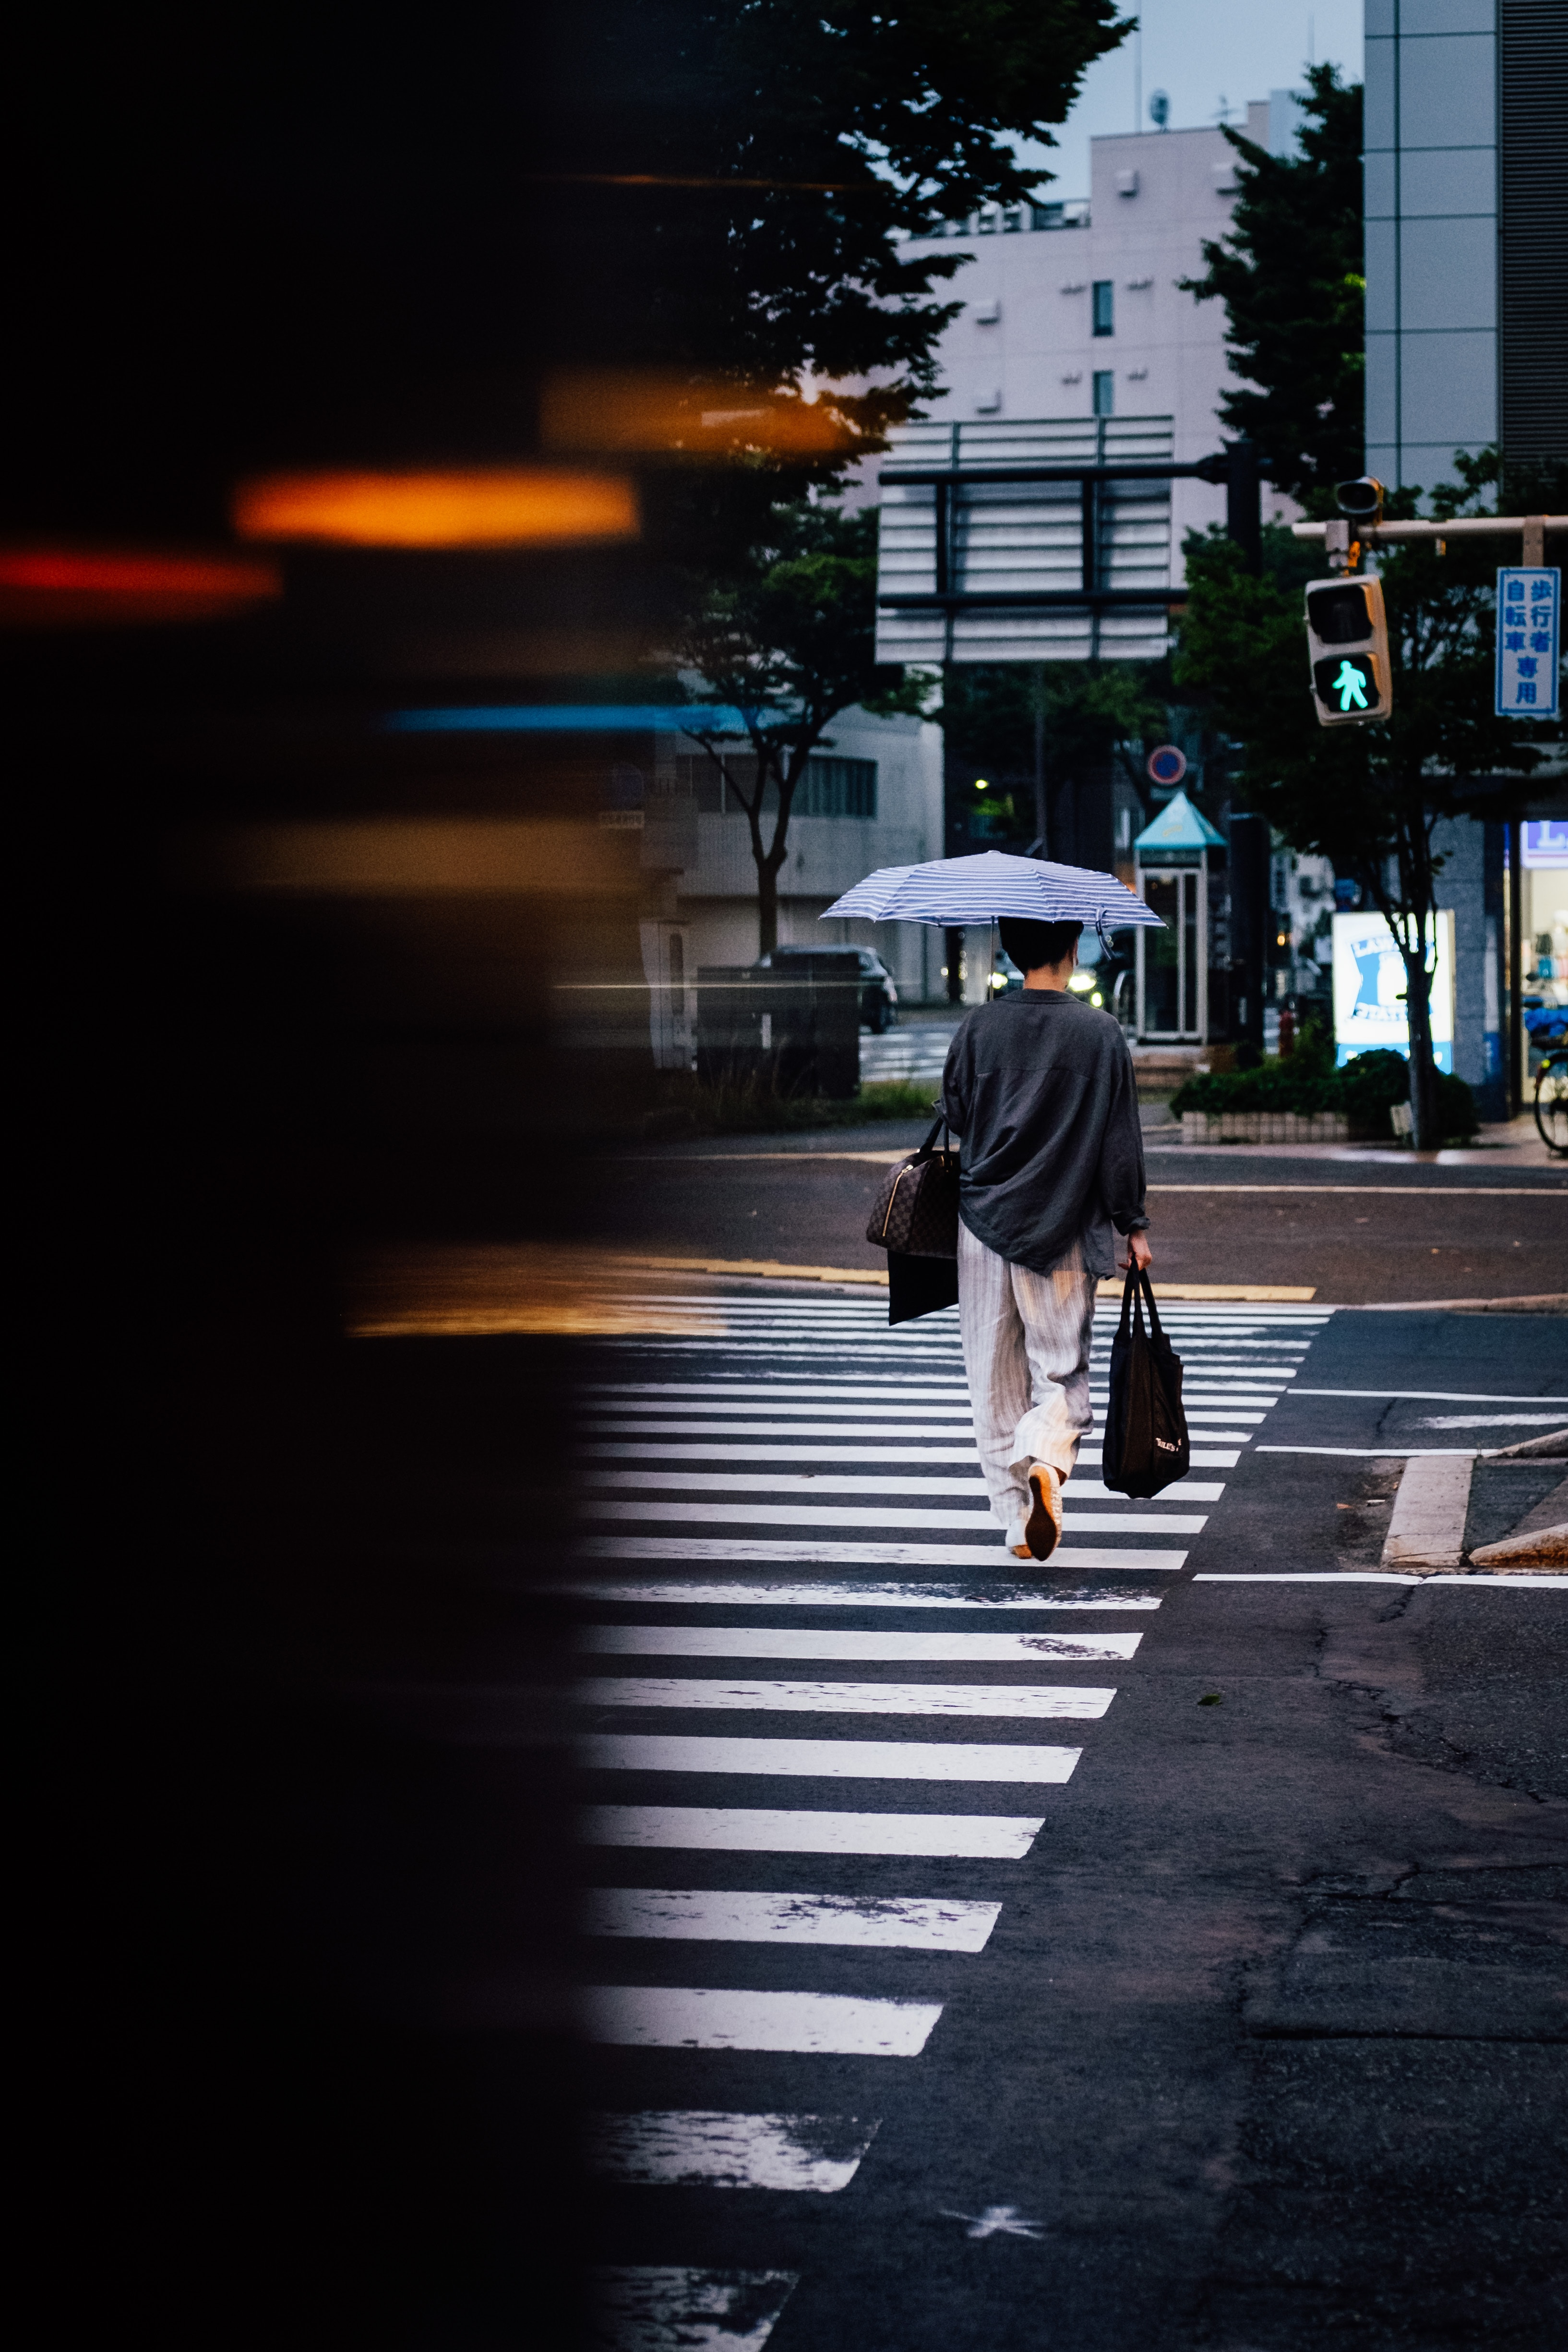 woman with umbrella crossing a street